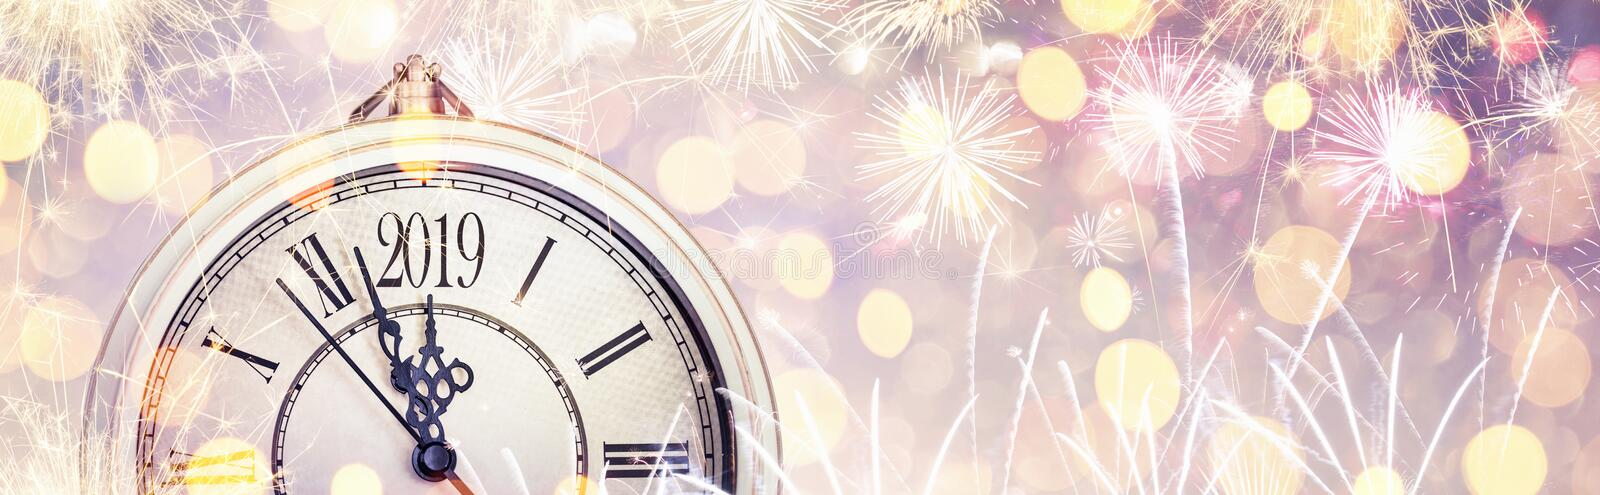 Happy New Year 2019 Celebration With Dial Clock and Fireworks royalty free illustration